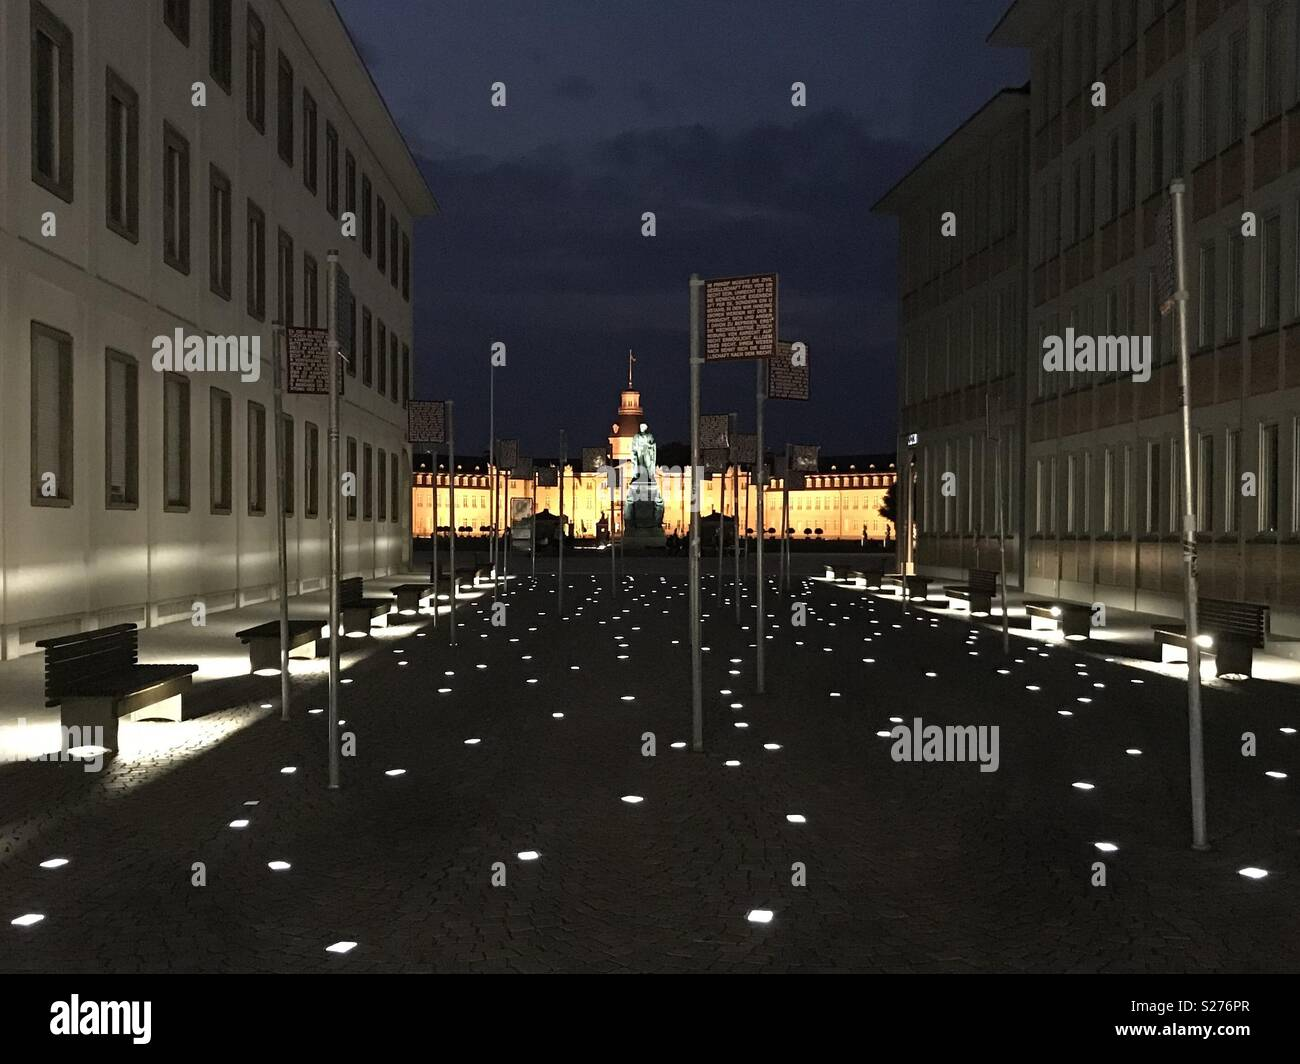 palace from Karlsruhe at night and the fundamental rights square lights - Stock Image